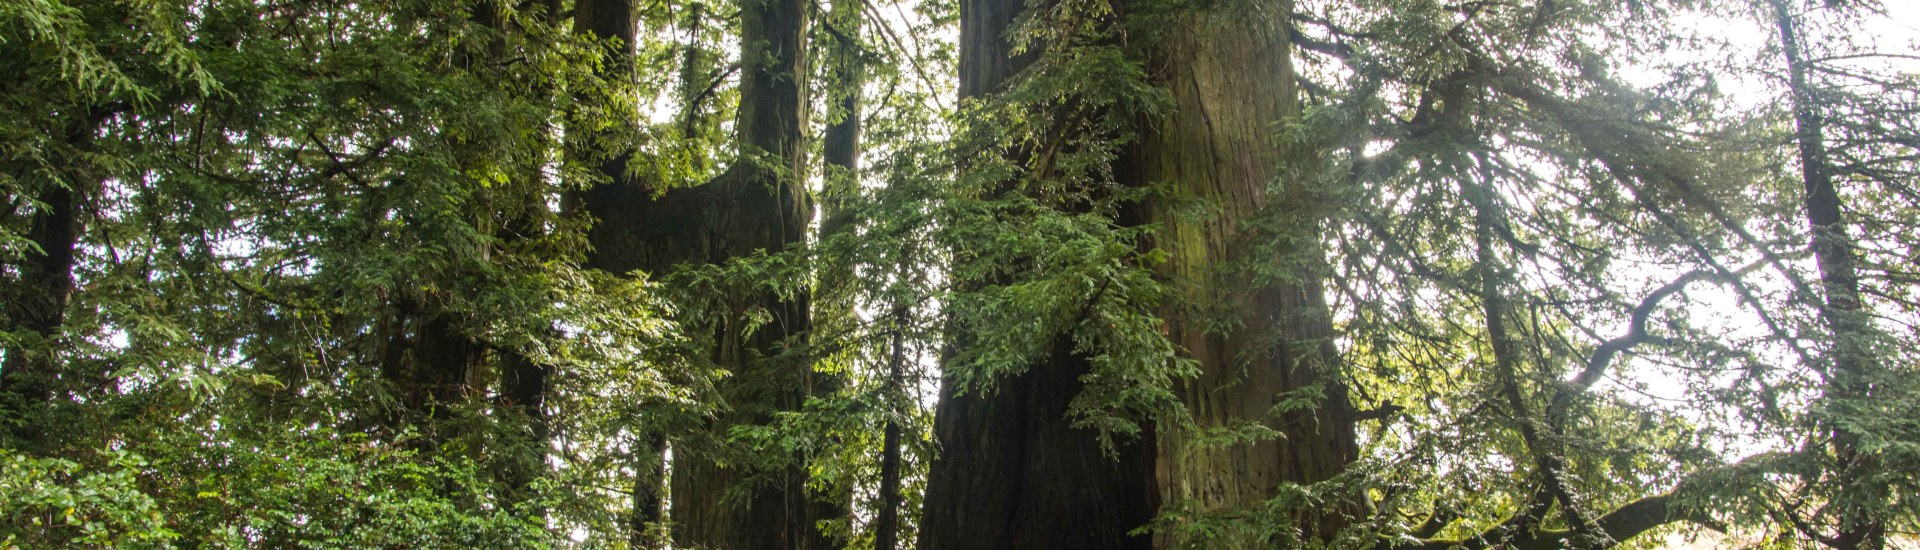 A Magical Hike - Indian Tree Open Space Preserve | Smiling in Sonoma